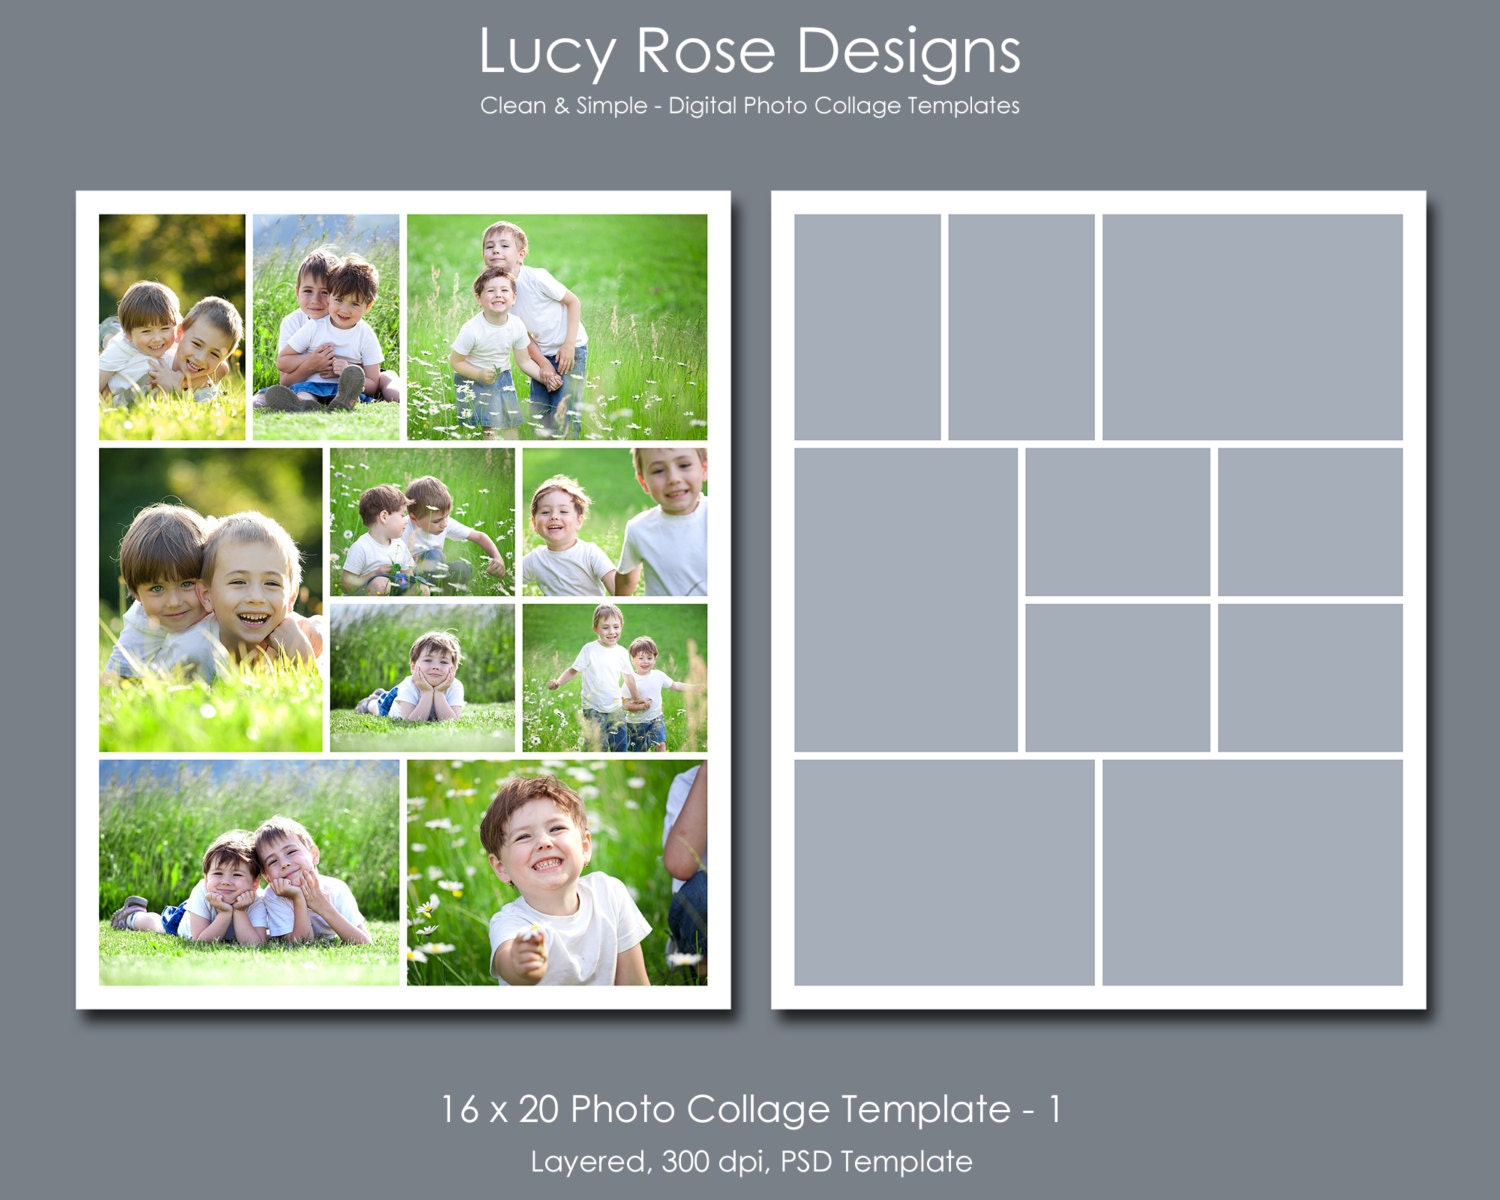 Photo Collage Templates | photo-collage.net